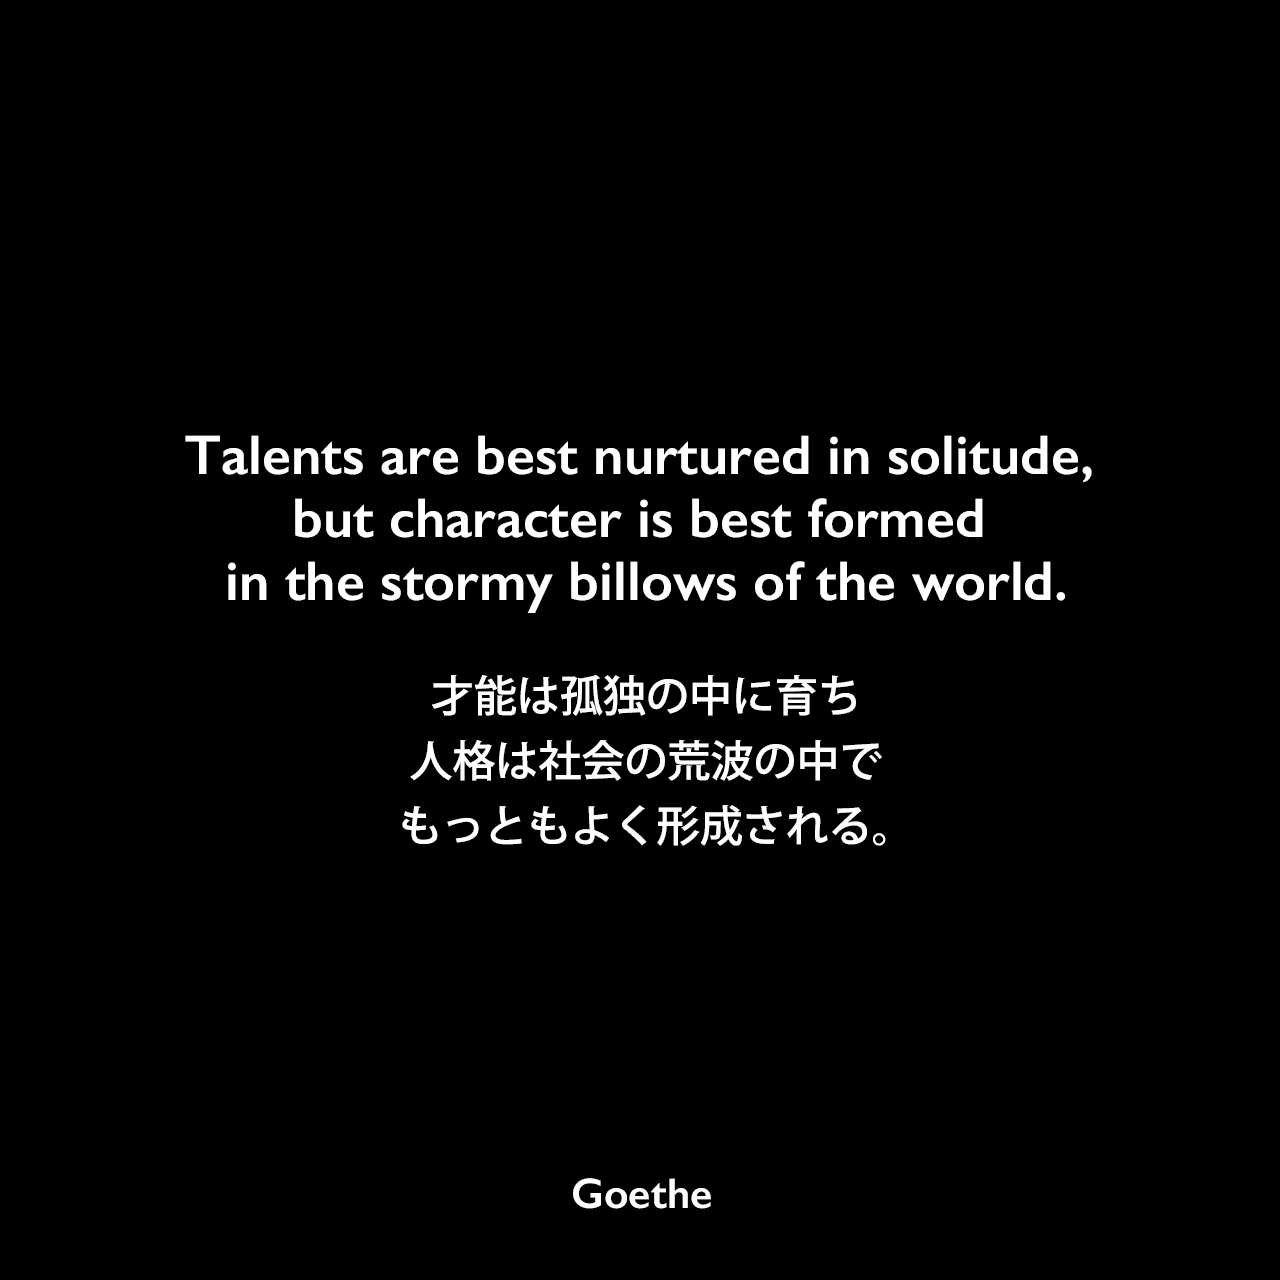 Talents are best nurtured in solitude, but character is best formed in the stormy billows of the world.才能は孤独の中に育ち、人格は社会の荒波の中でもっともよく形成される。Johann Wolfgang von Goethe